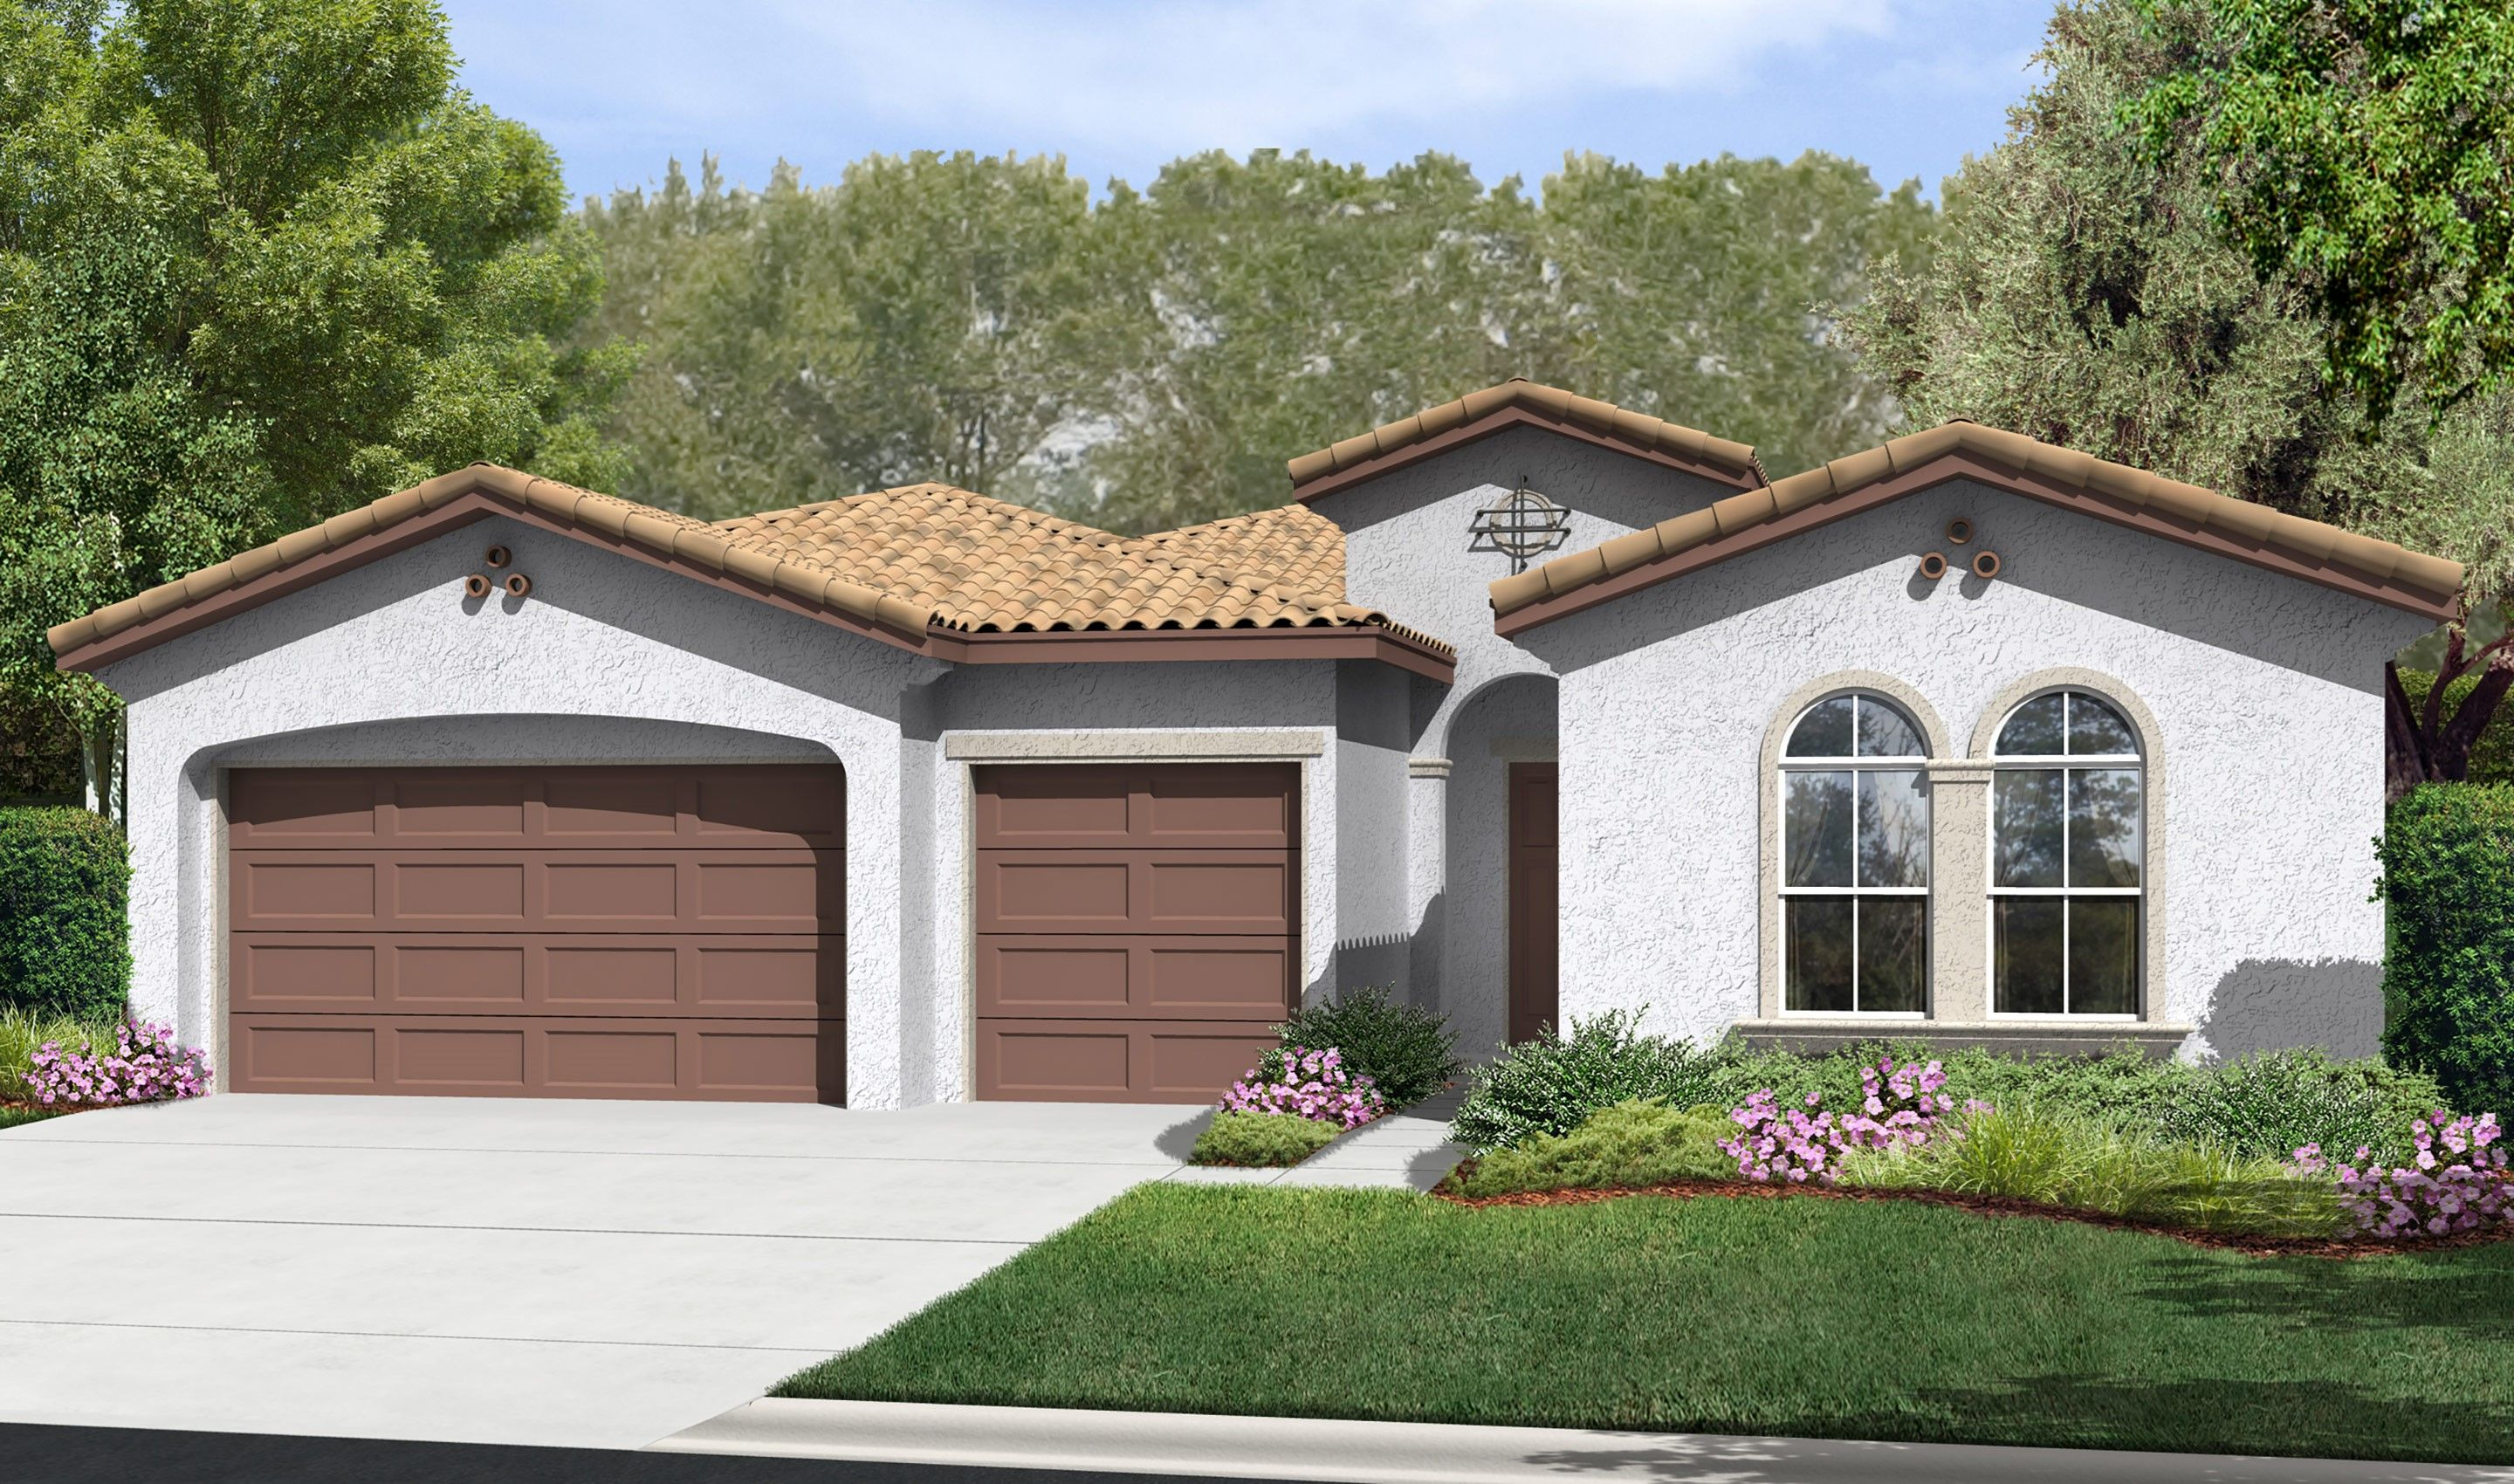 Single Family for Sale at K. Hovnanian's® Four Seasons At Beaumont - Lunette 339 Enchanted Park North Beaumont, California 92223 United States